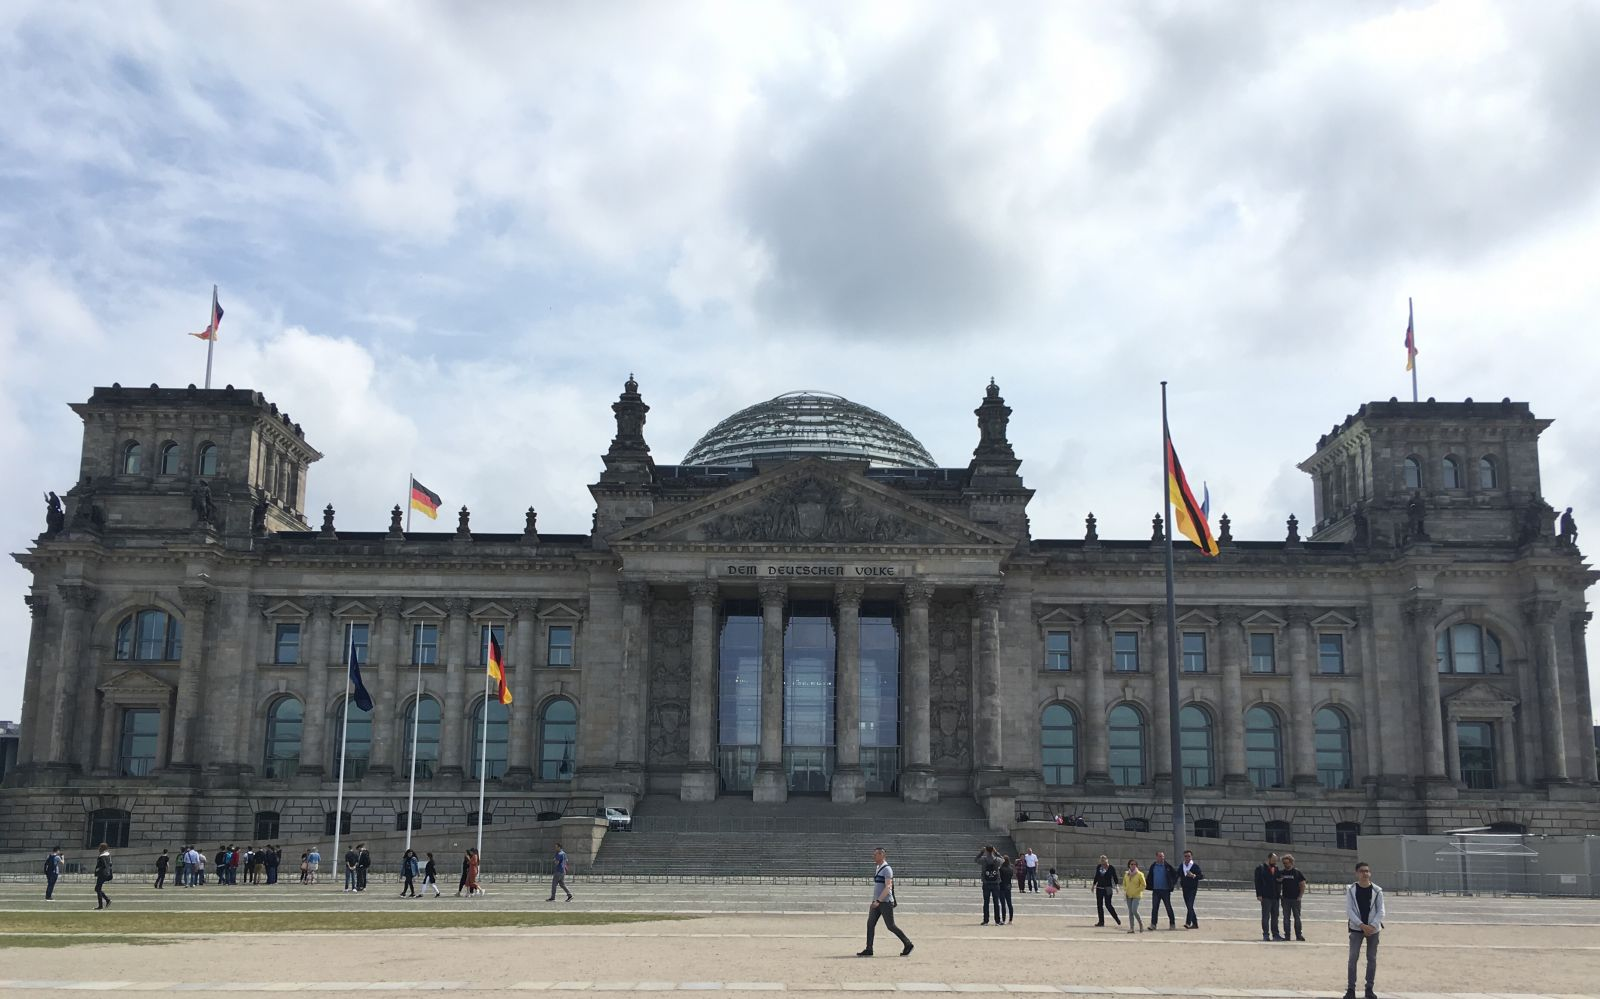 Outside the Reichstag.